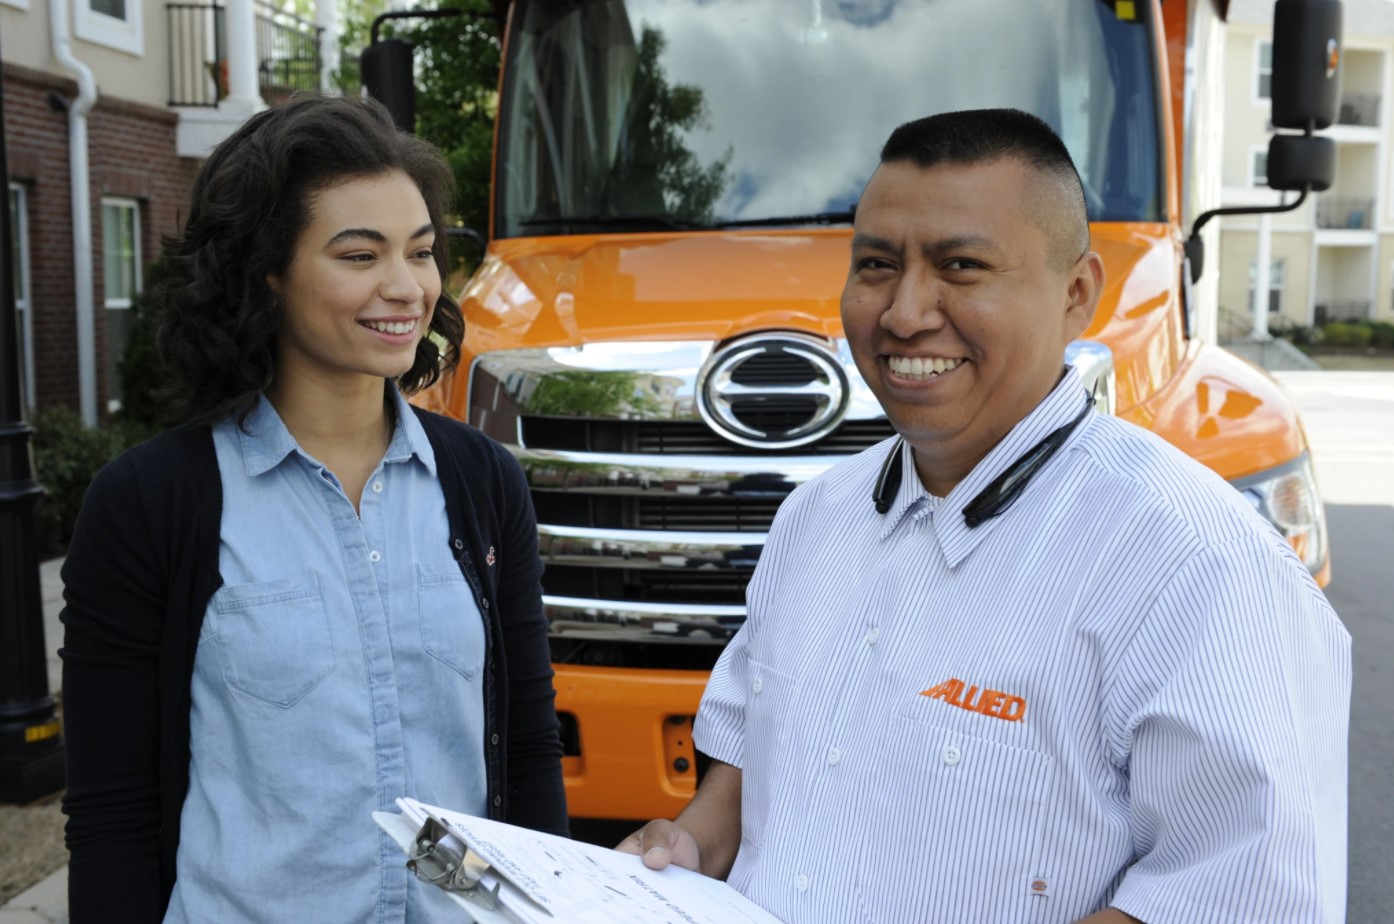 Allied Moving Agent With Happy Customer